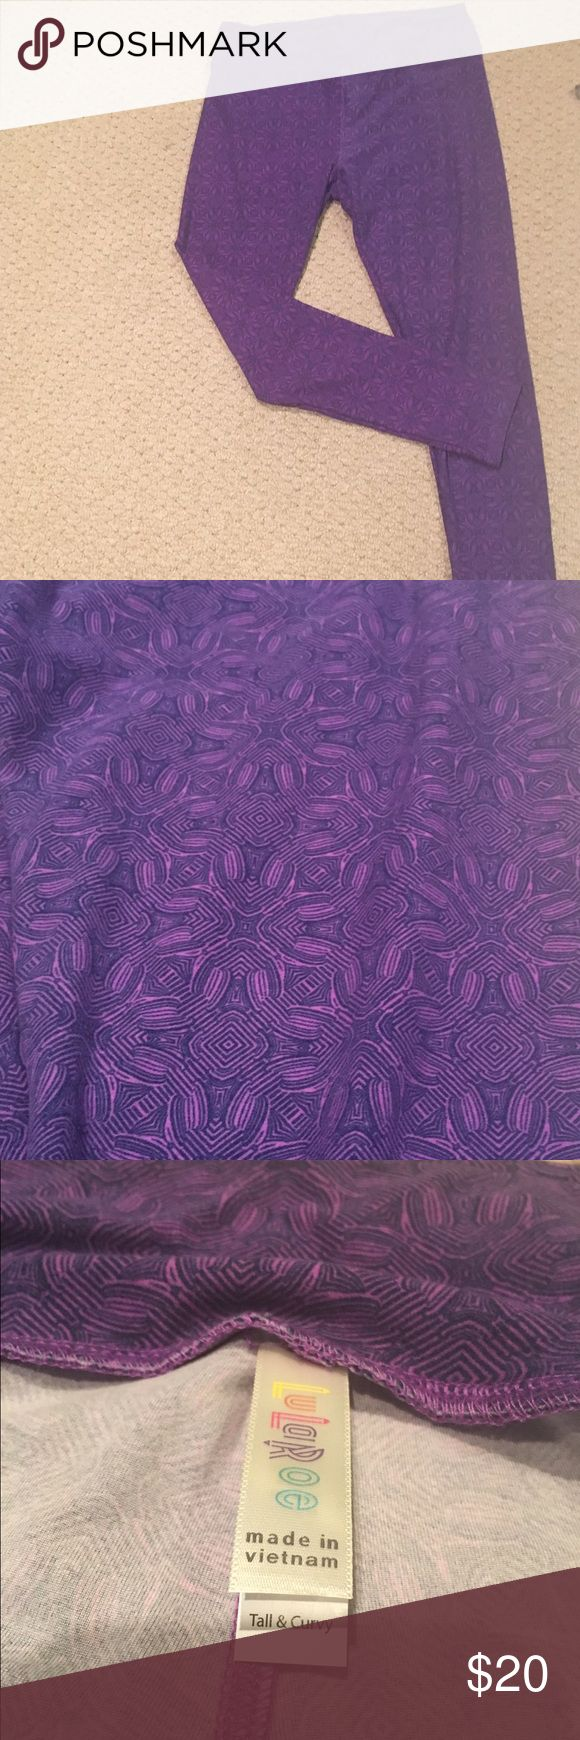 """LulaRoe Tall and Curvy Purple Leggings These famed """"buttery"""" leggings have only been worn once for about 2 hours.  They are great for curvy or over 5' 7"""" ladies.  This purple pattern looks great will tons of tops. The model pic leggings are different, but there to show you styling options! LuLaRoe Pants Leggings"""